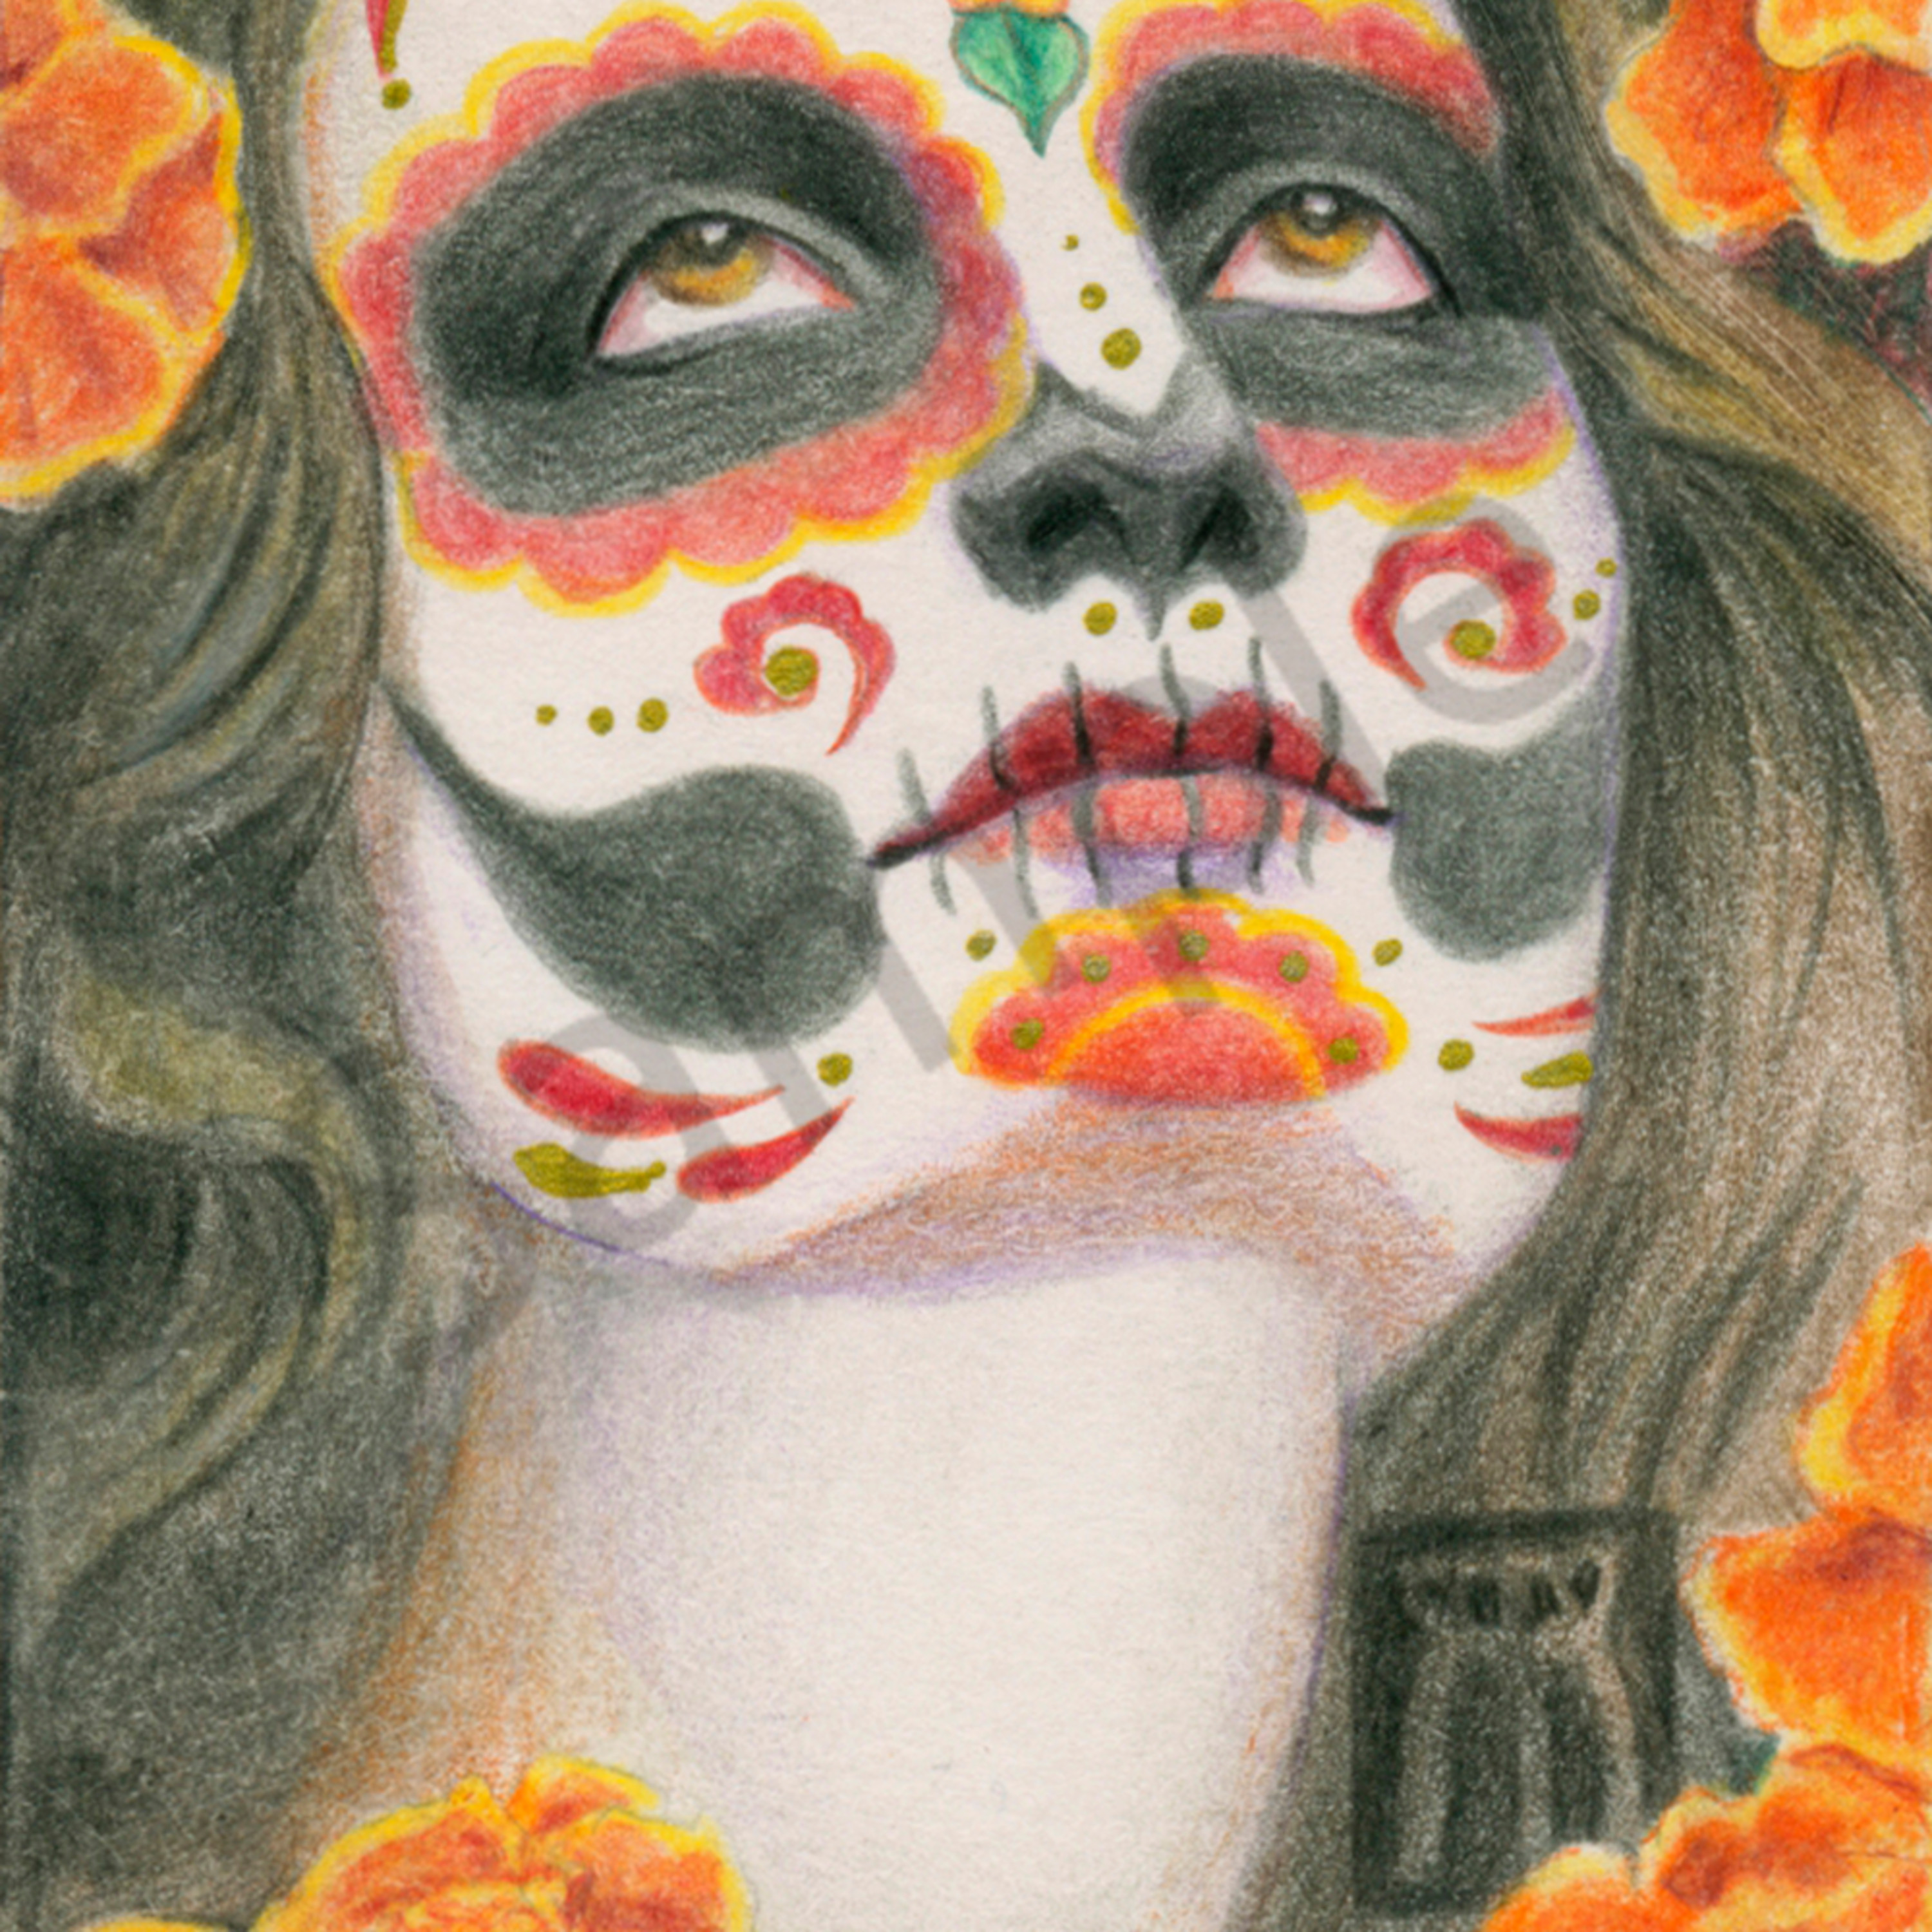 Day of the dead marigolds 10 x 14 zofpja